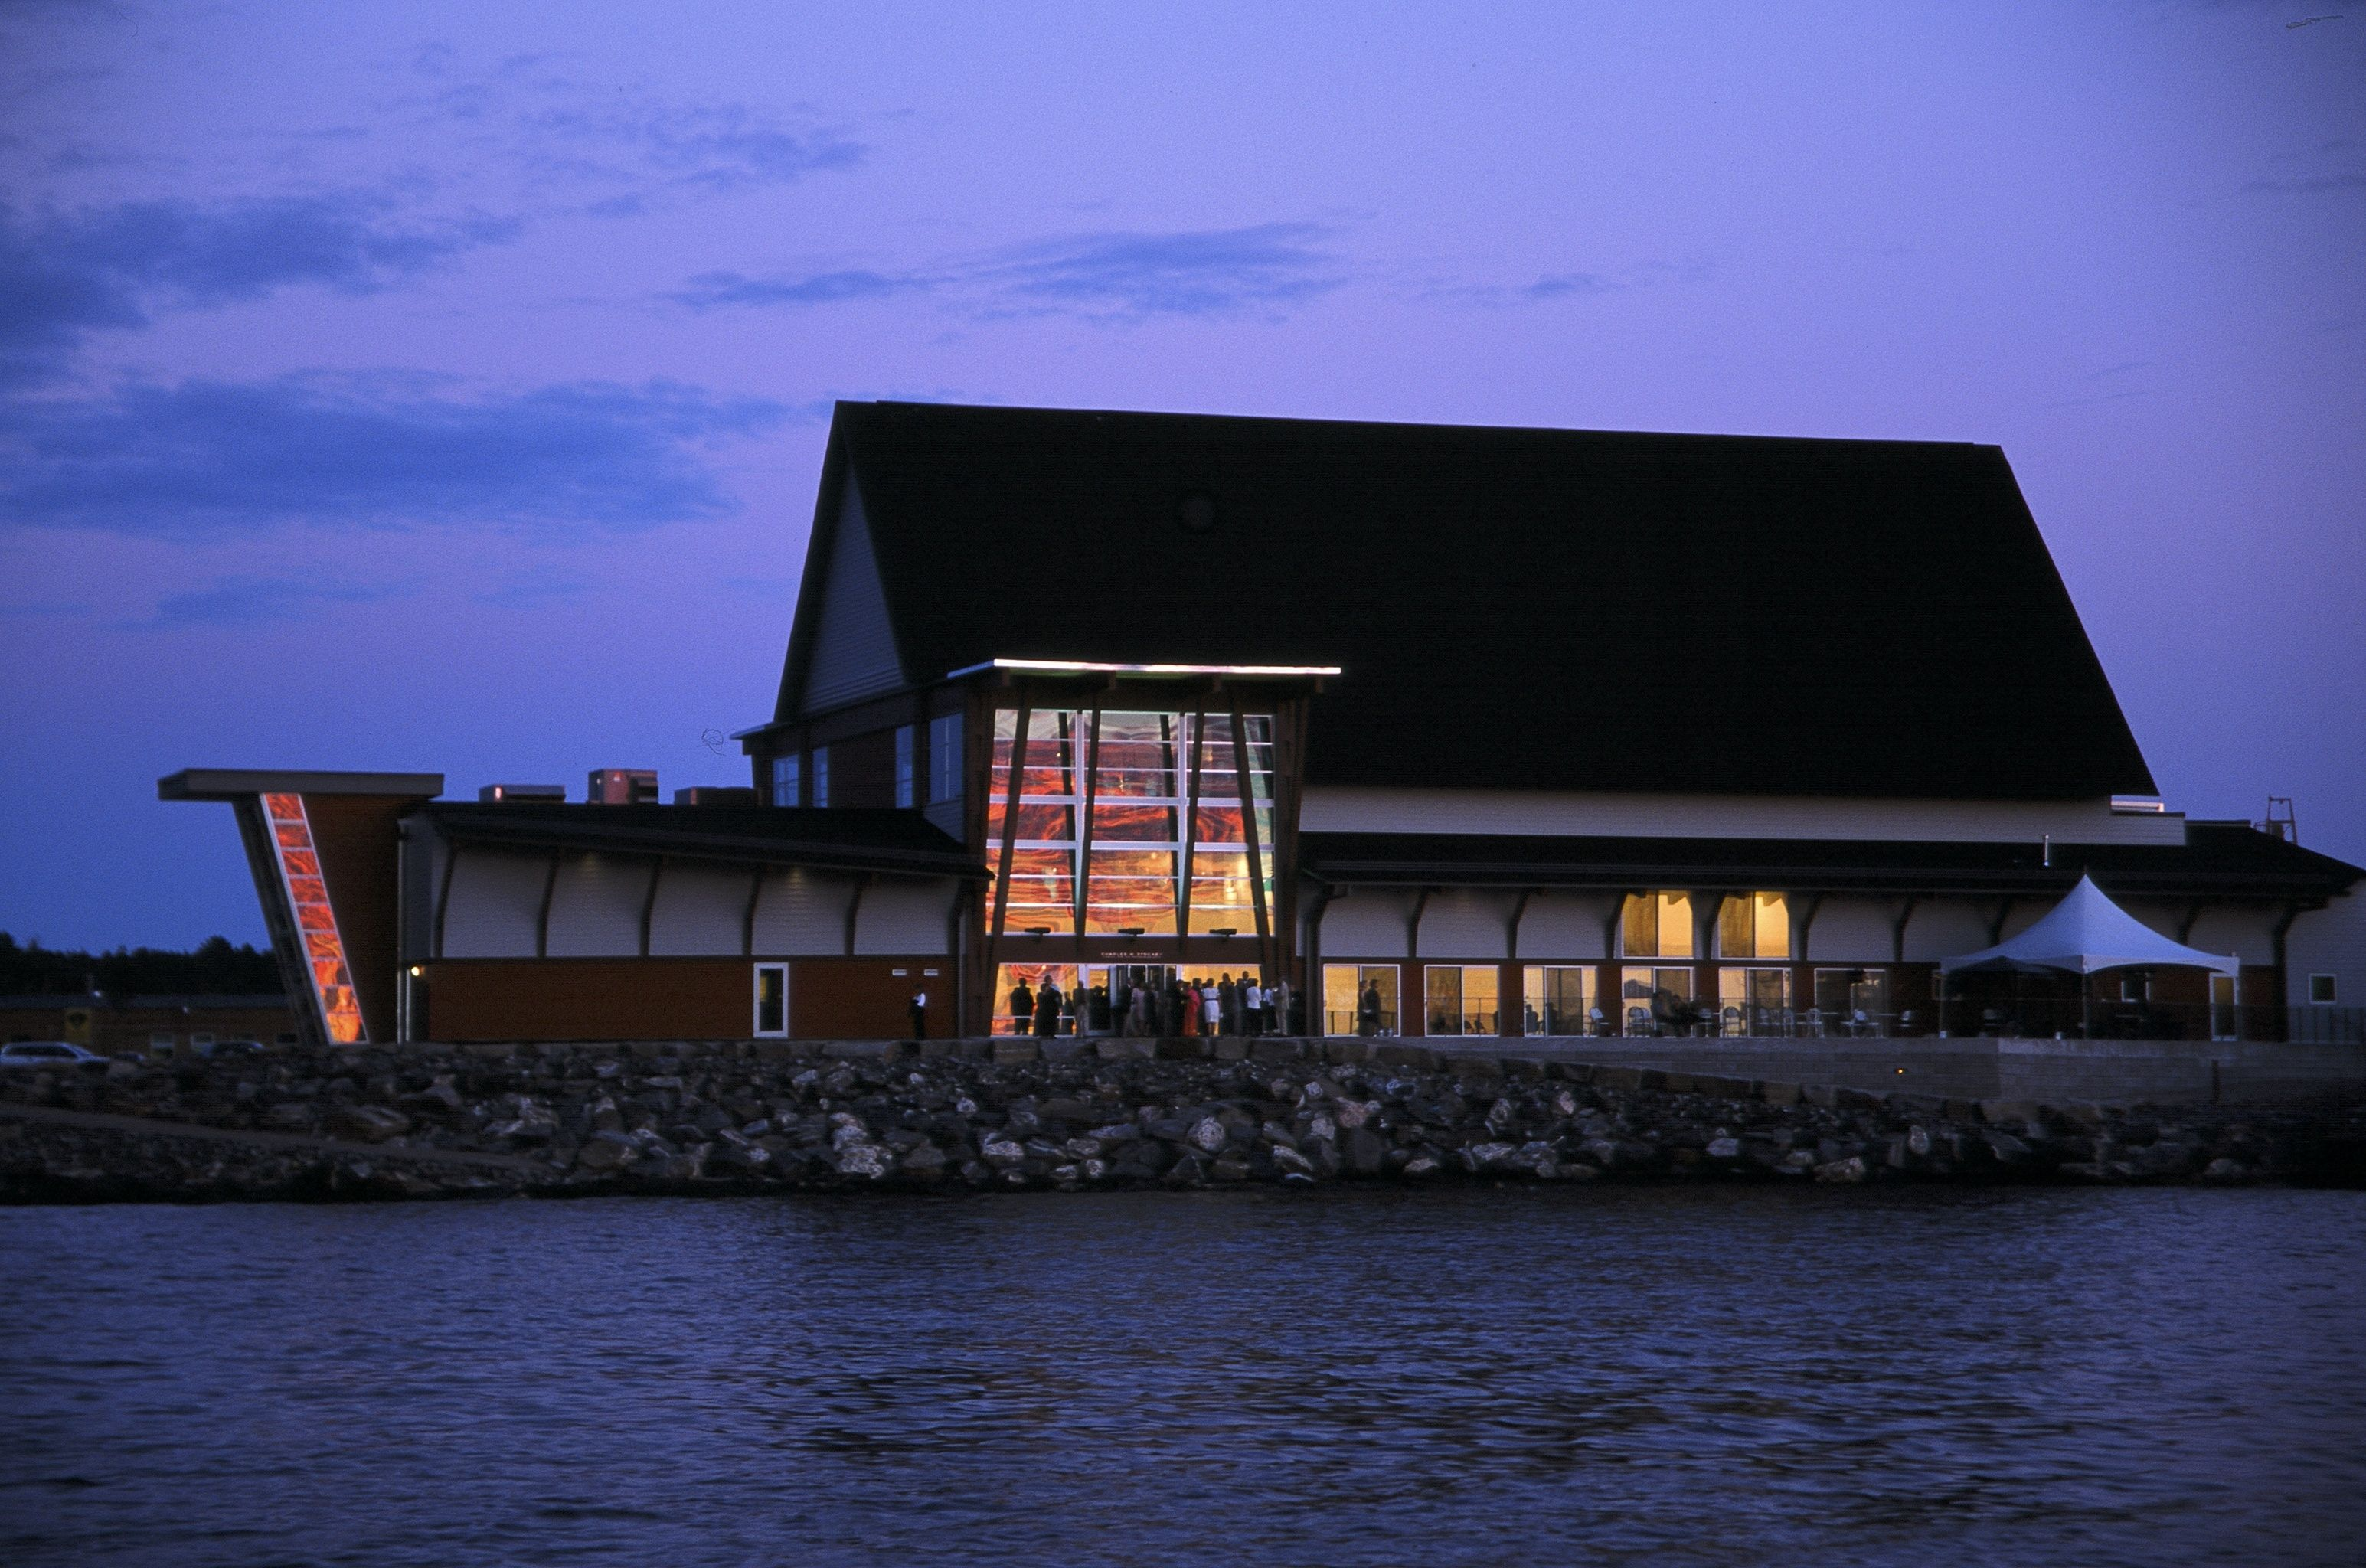 The Stockey Centre on Bay in Parry Sound, ON